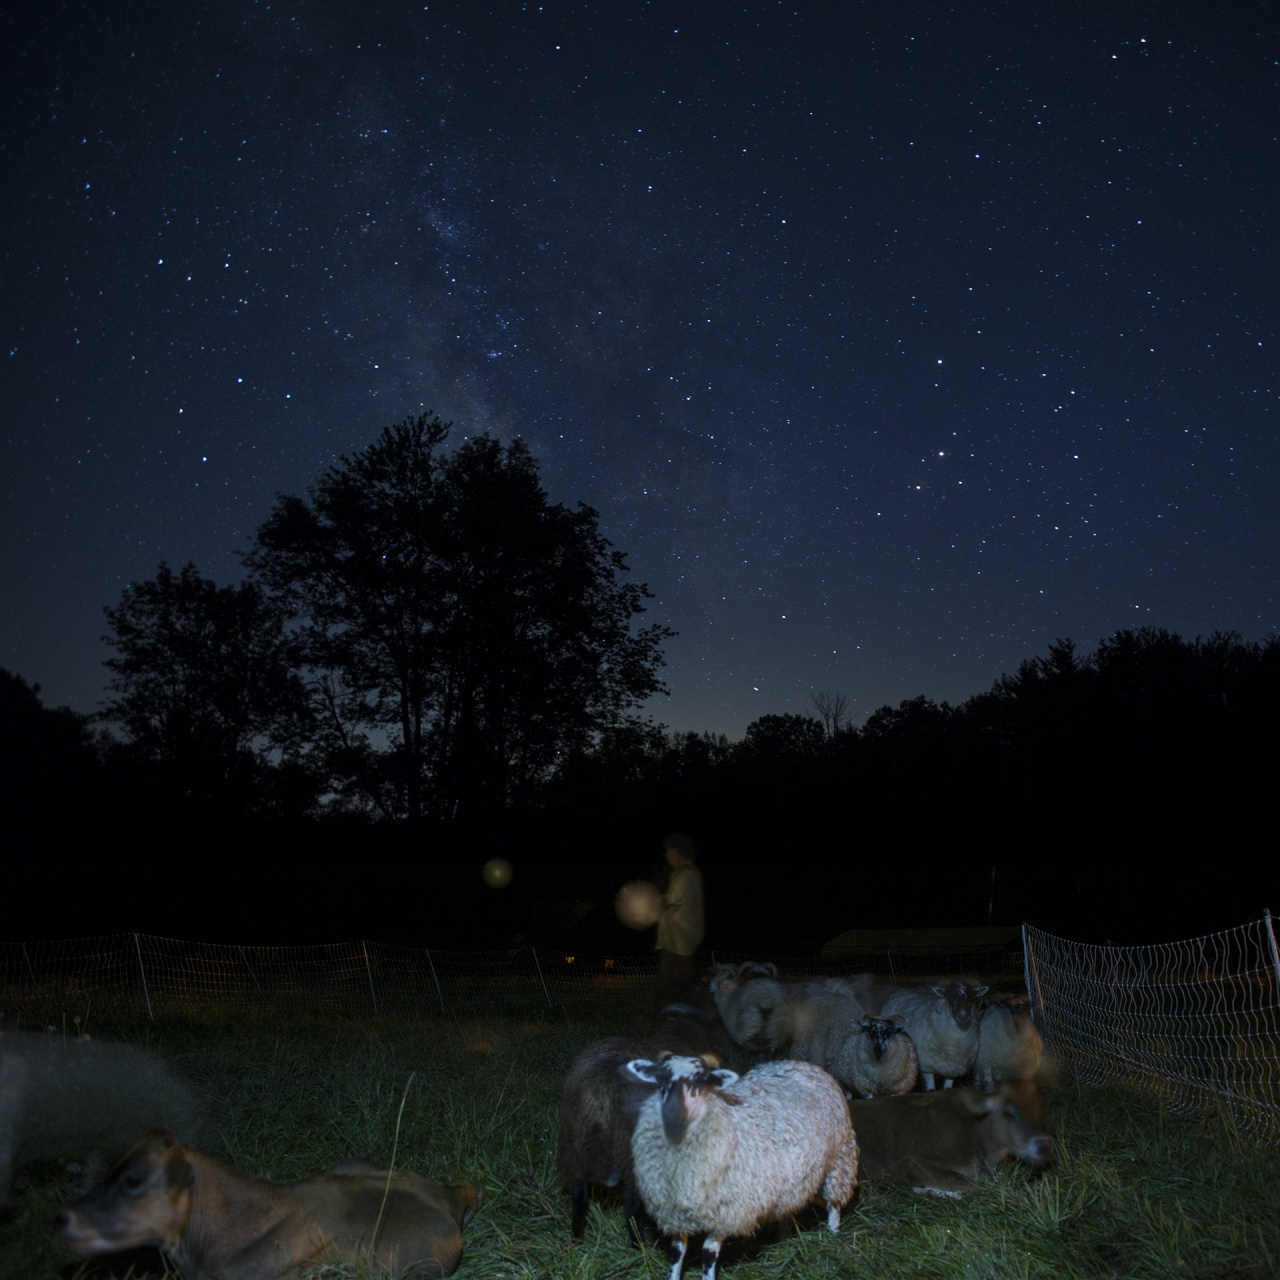 Night Grazing with Sheep